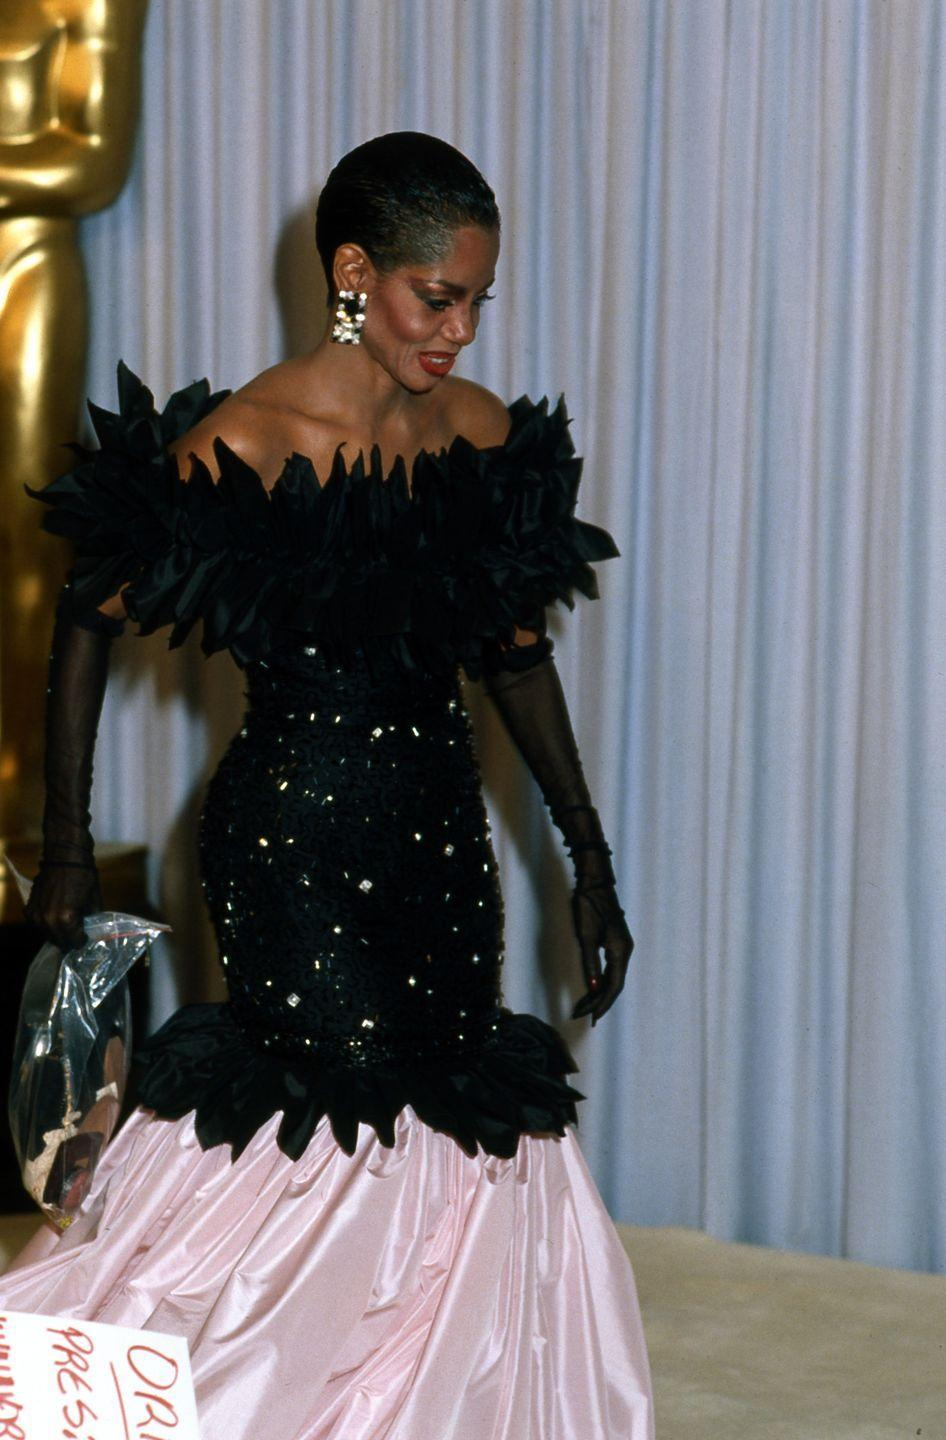 "<p>The singer stunned in this two-toned gown complete with a feathered top and sheer gloves. She performed the ever-so-romantic ballad Take My Breath Away"" with Lou Rawls at the ceremony. </p>"